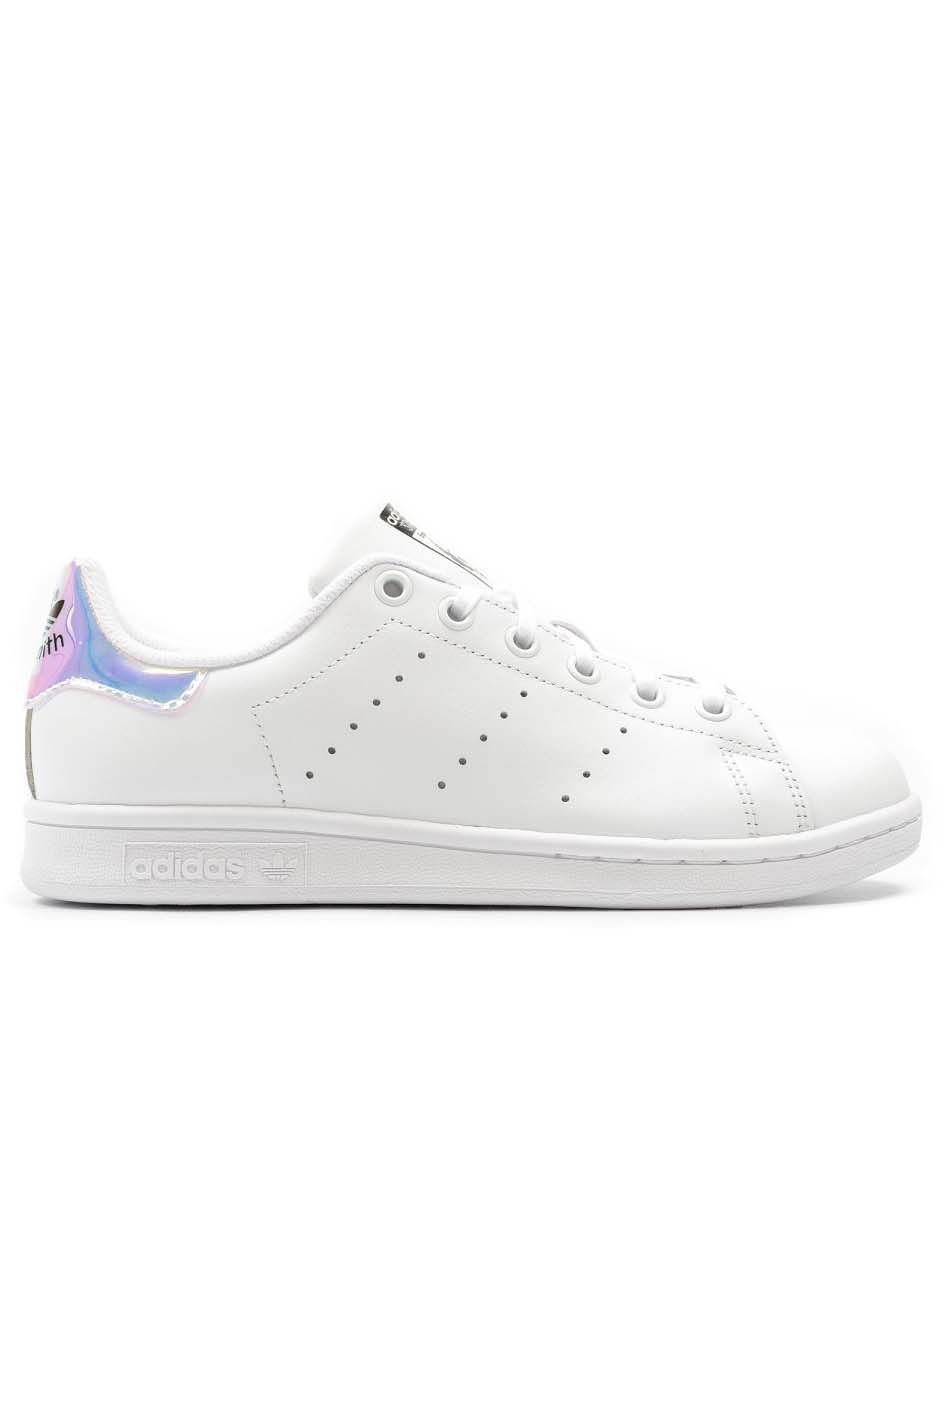 Tenis Adidas STAN SMITH Ftwr WhiteMetallic Silver SldFtwr